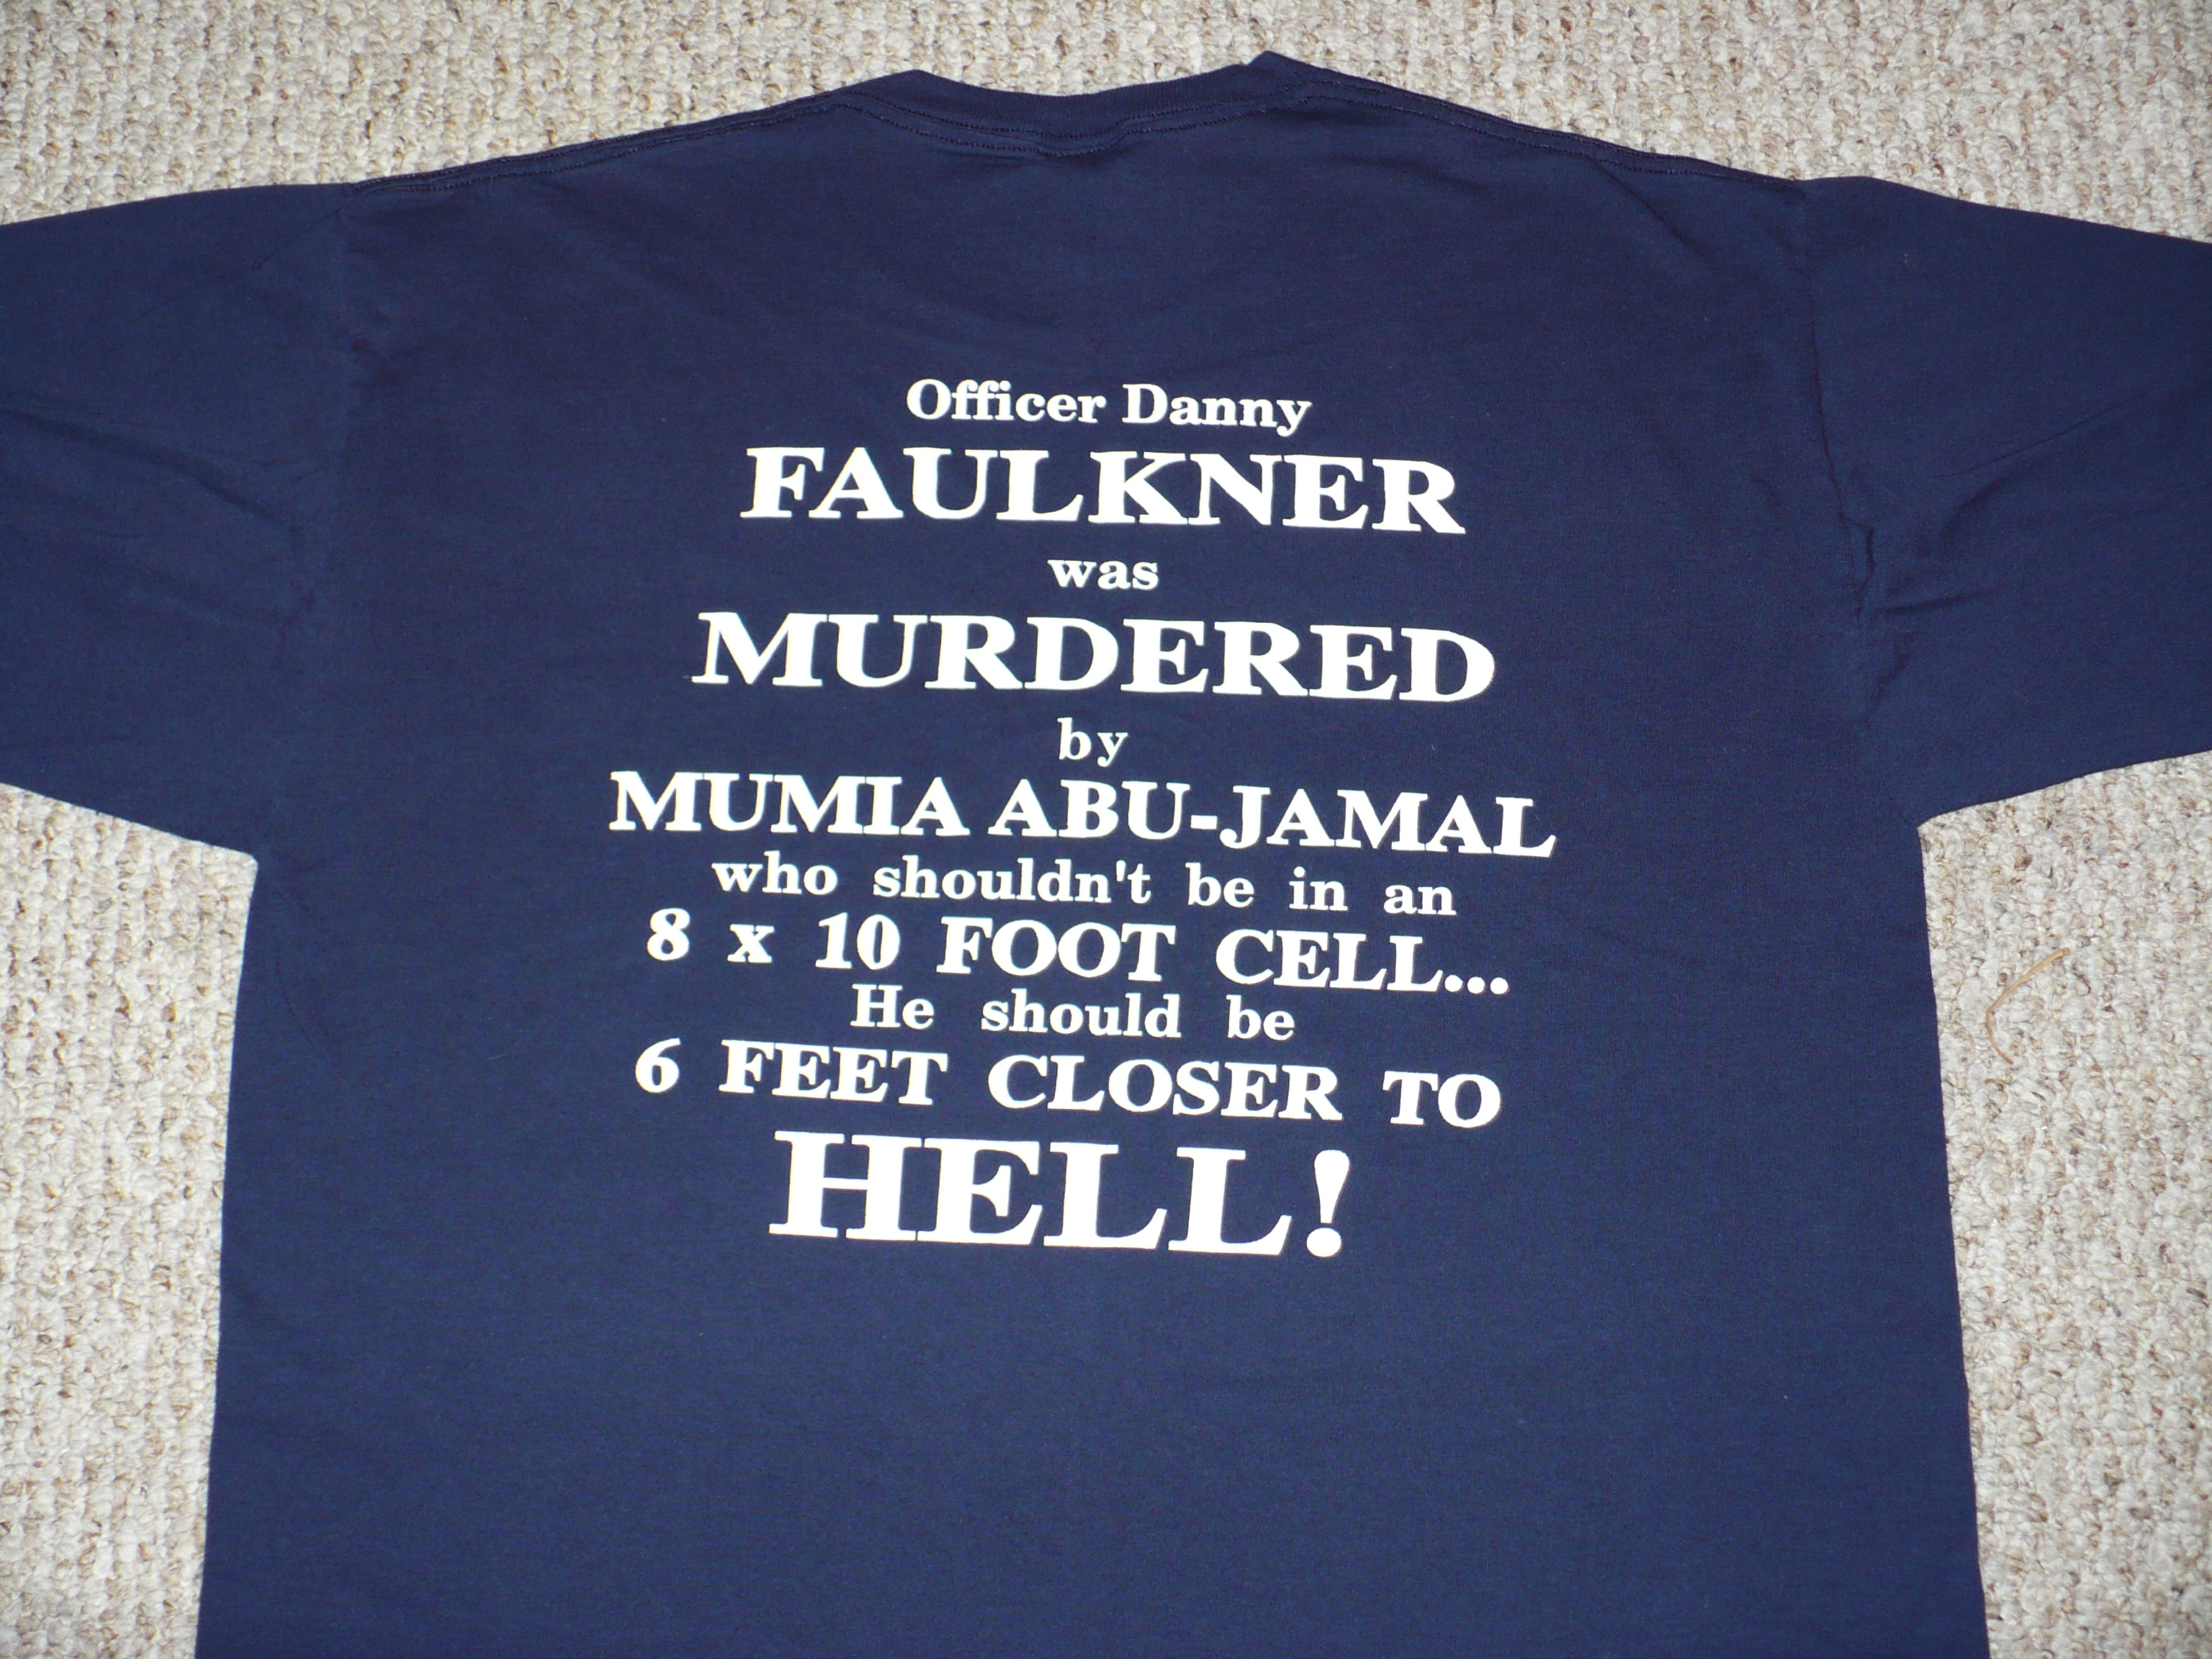 adf4750b9cc Anti-Abu-Jamal T-shirt sold in Philadelphia